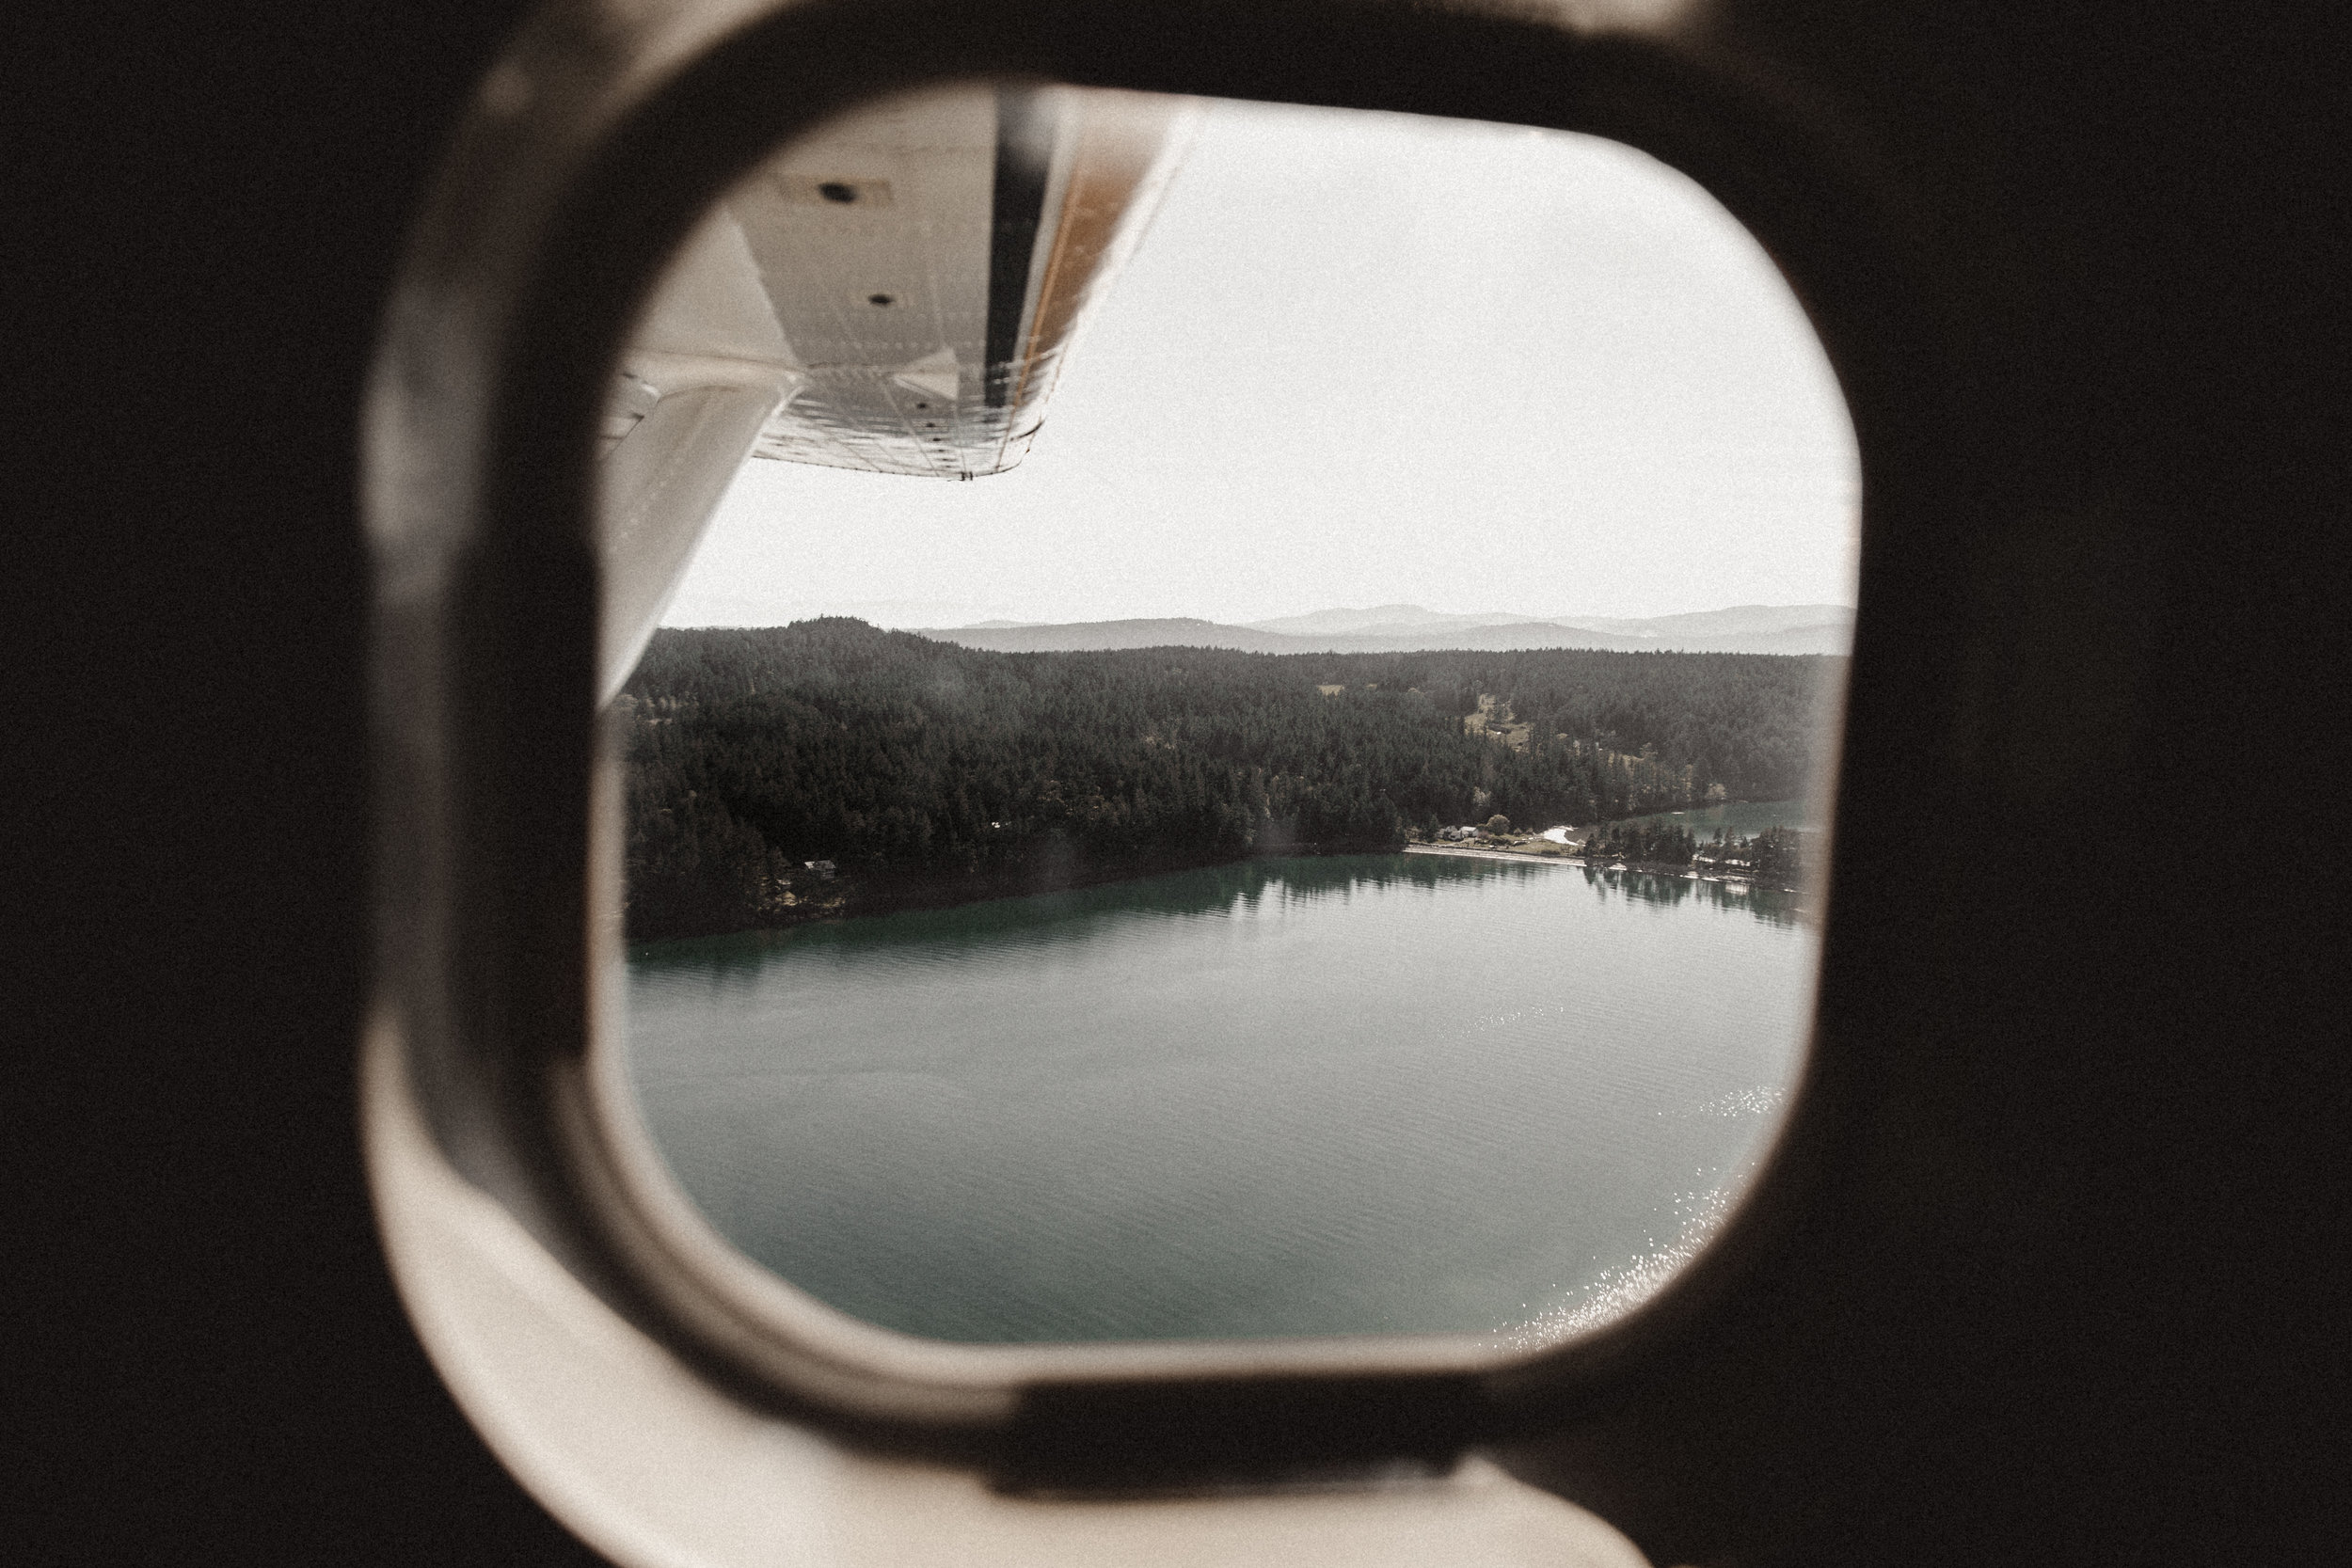 april — i went on a sea plane to the san juan islands with an awesome company called filson. definitely a trip to remember!